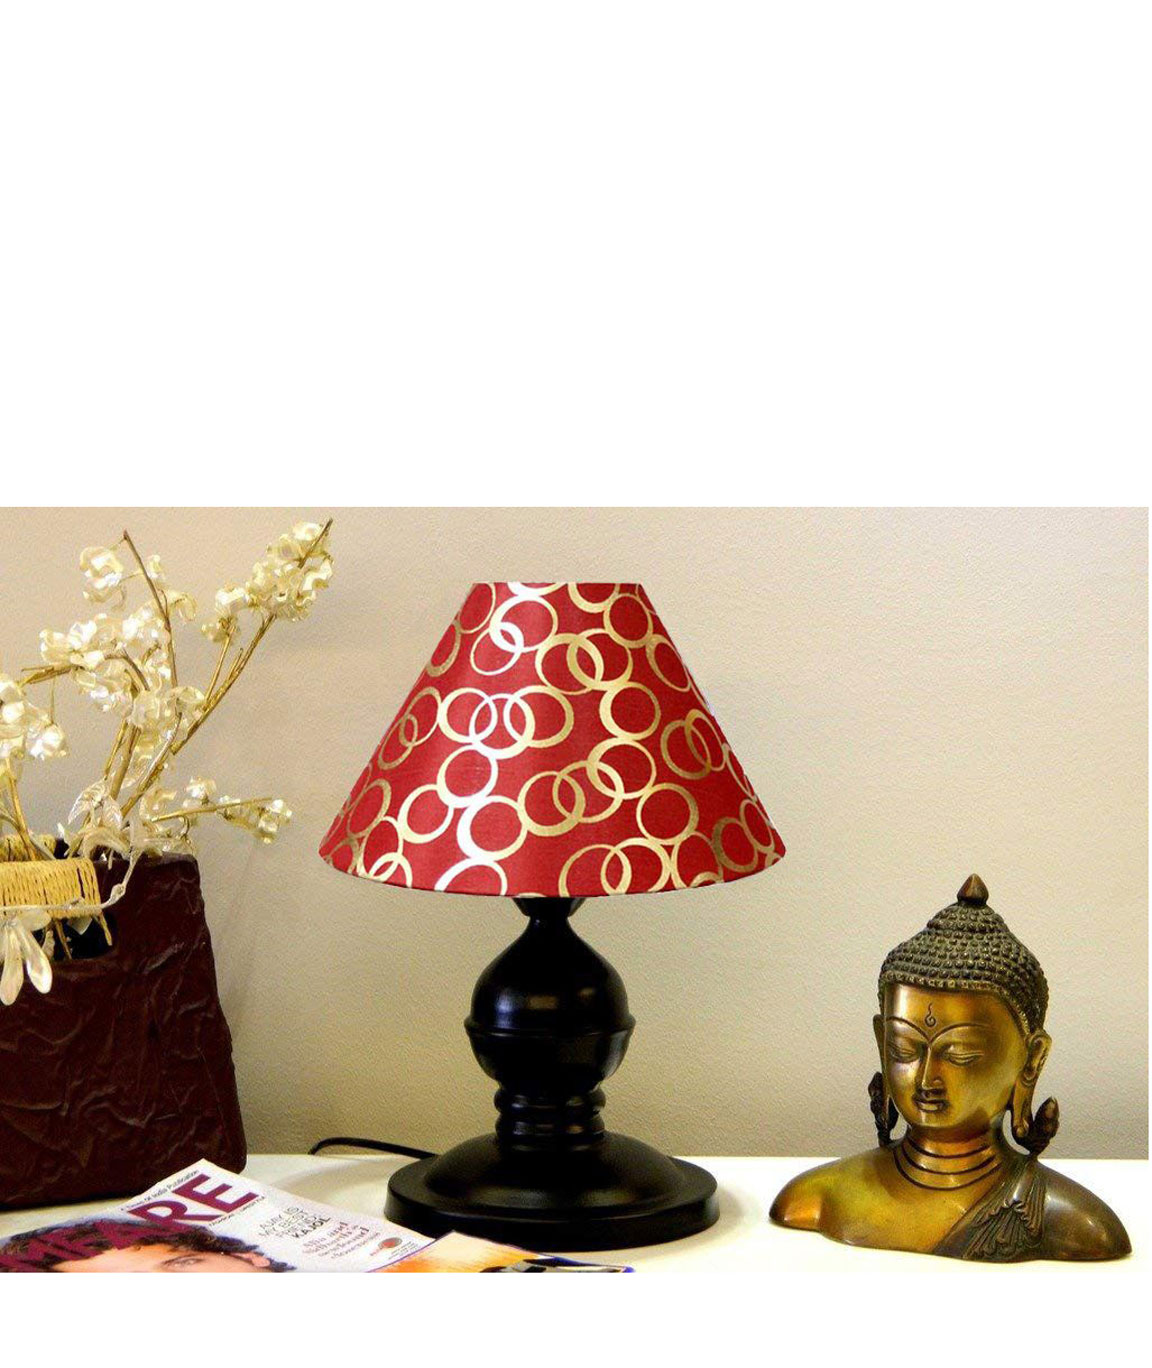 RDC Black Designer Table Lamp with 10 Inches Round Red with Golden Polka Dots Designer Lamp Shade